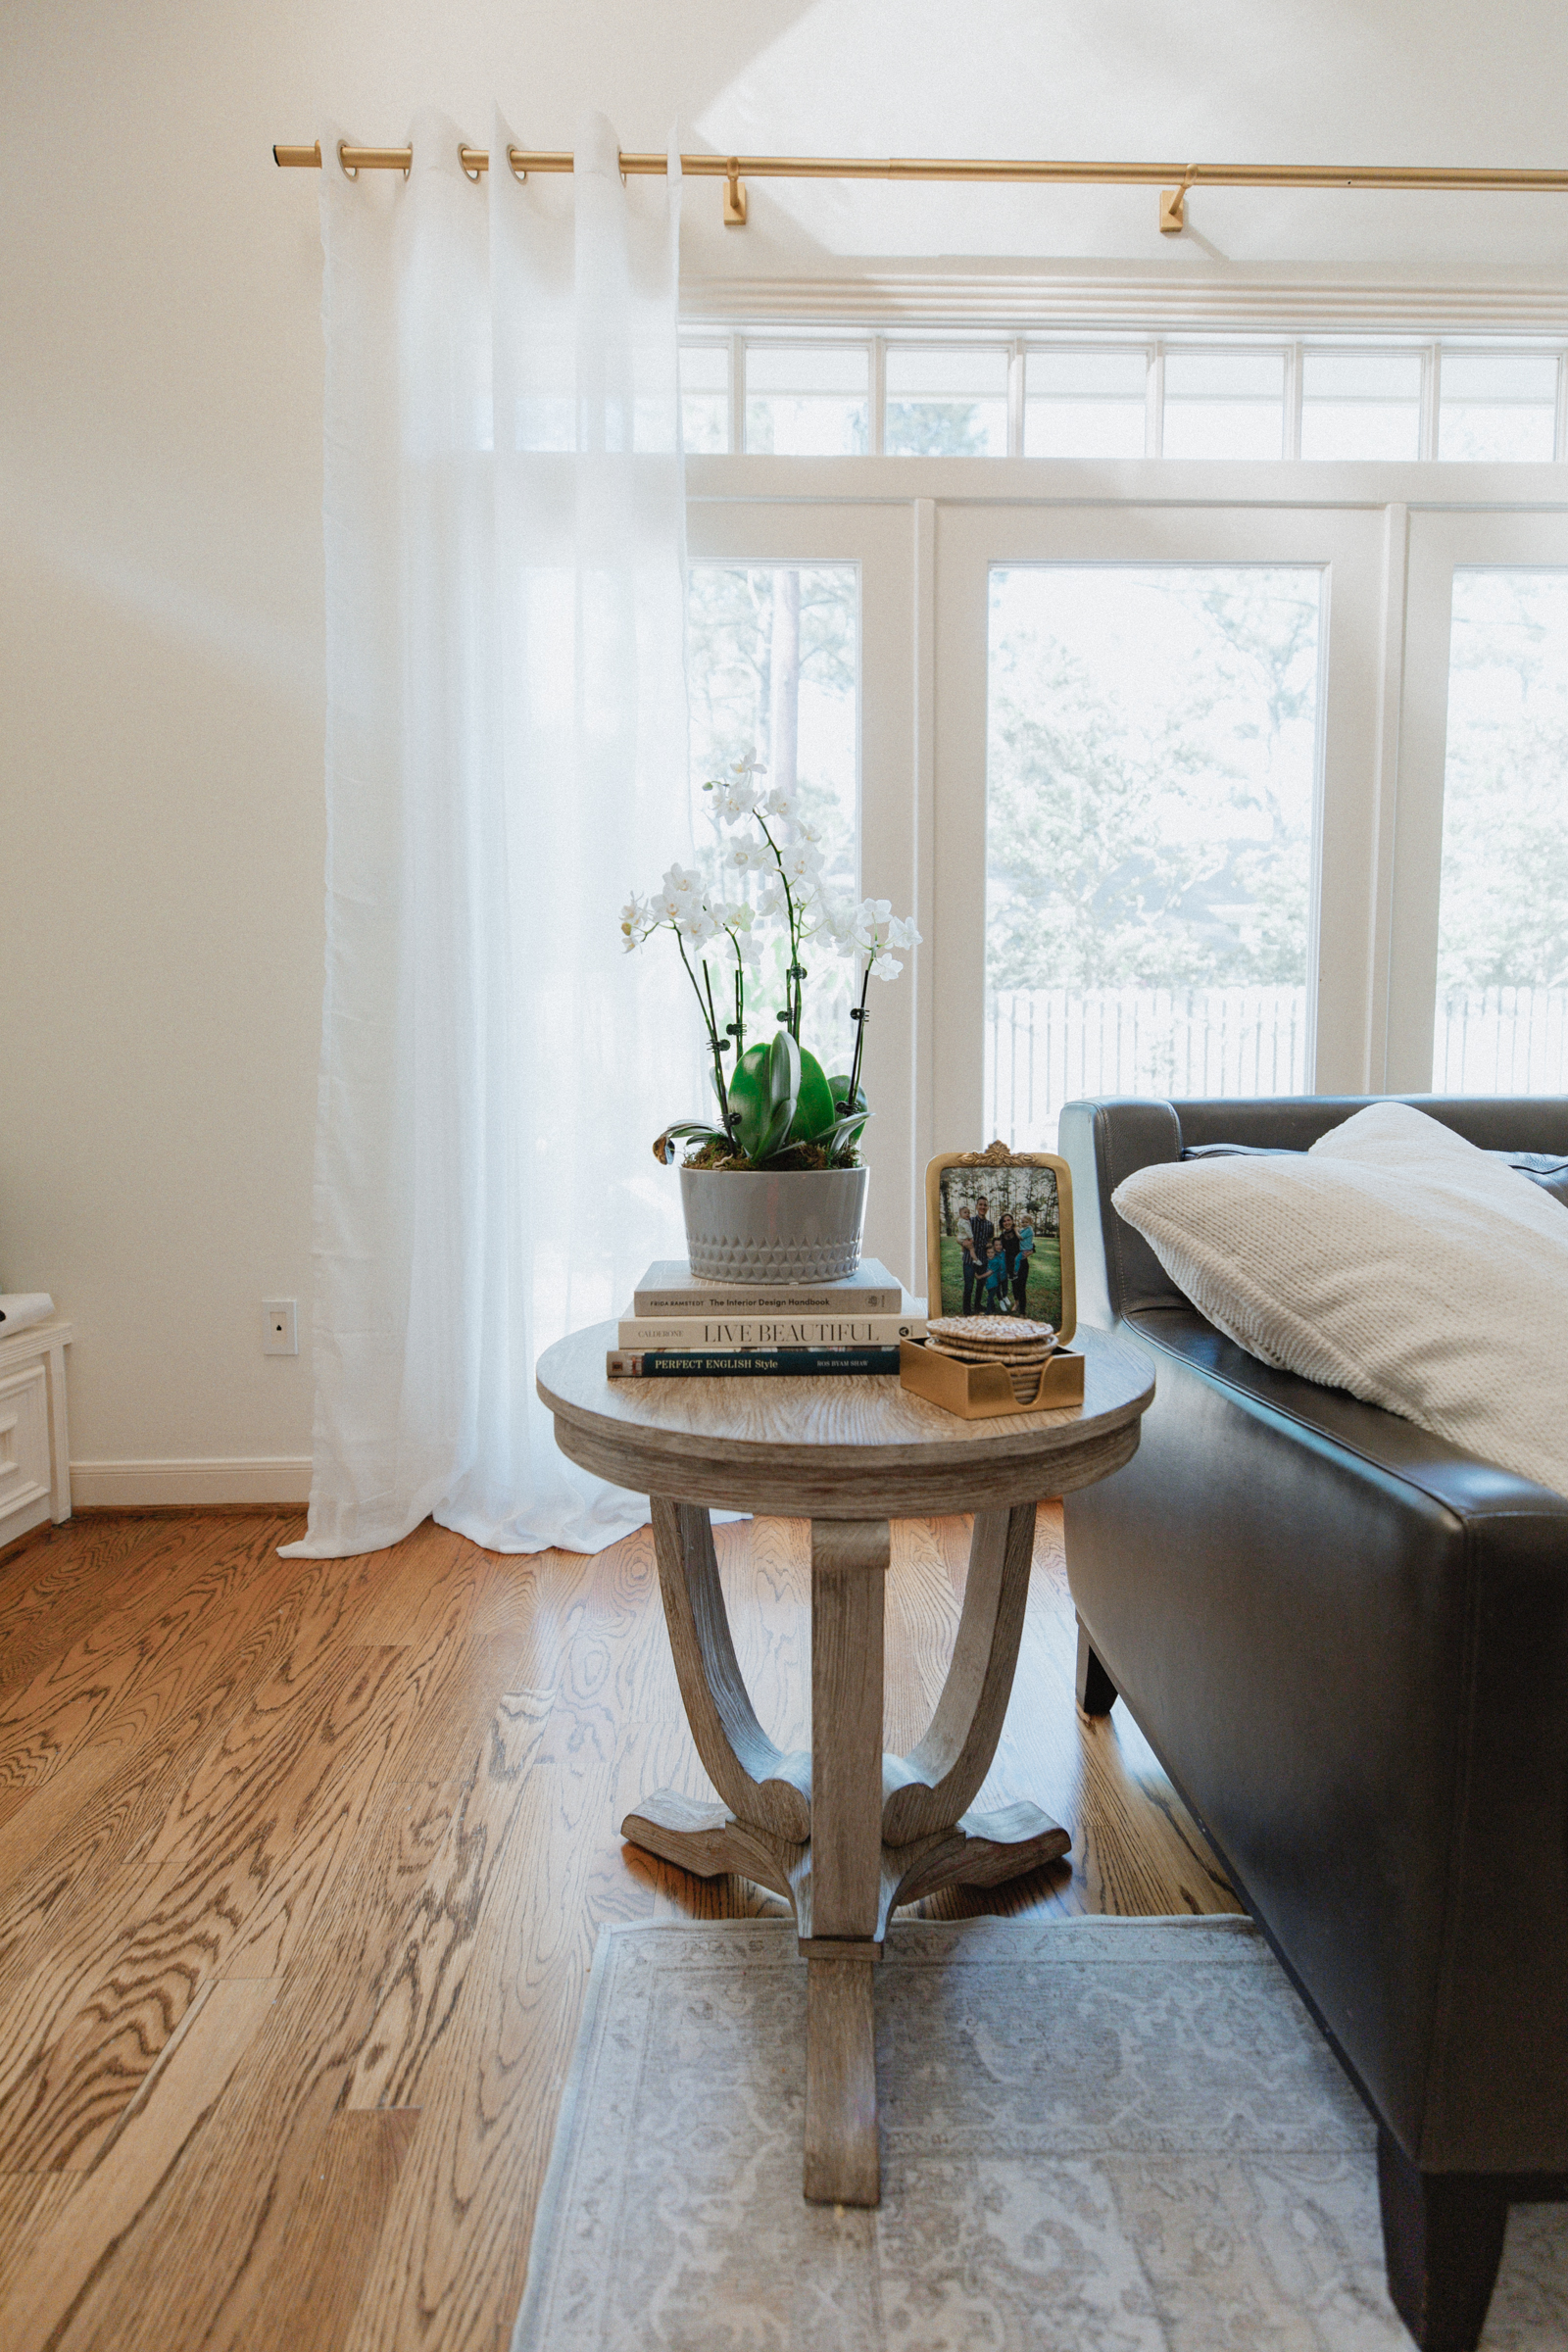 wooden side coffee table for a cozy and warm sunroom decor